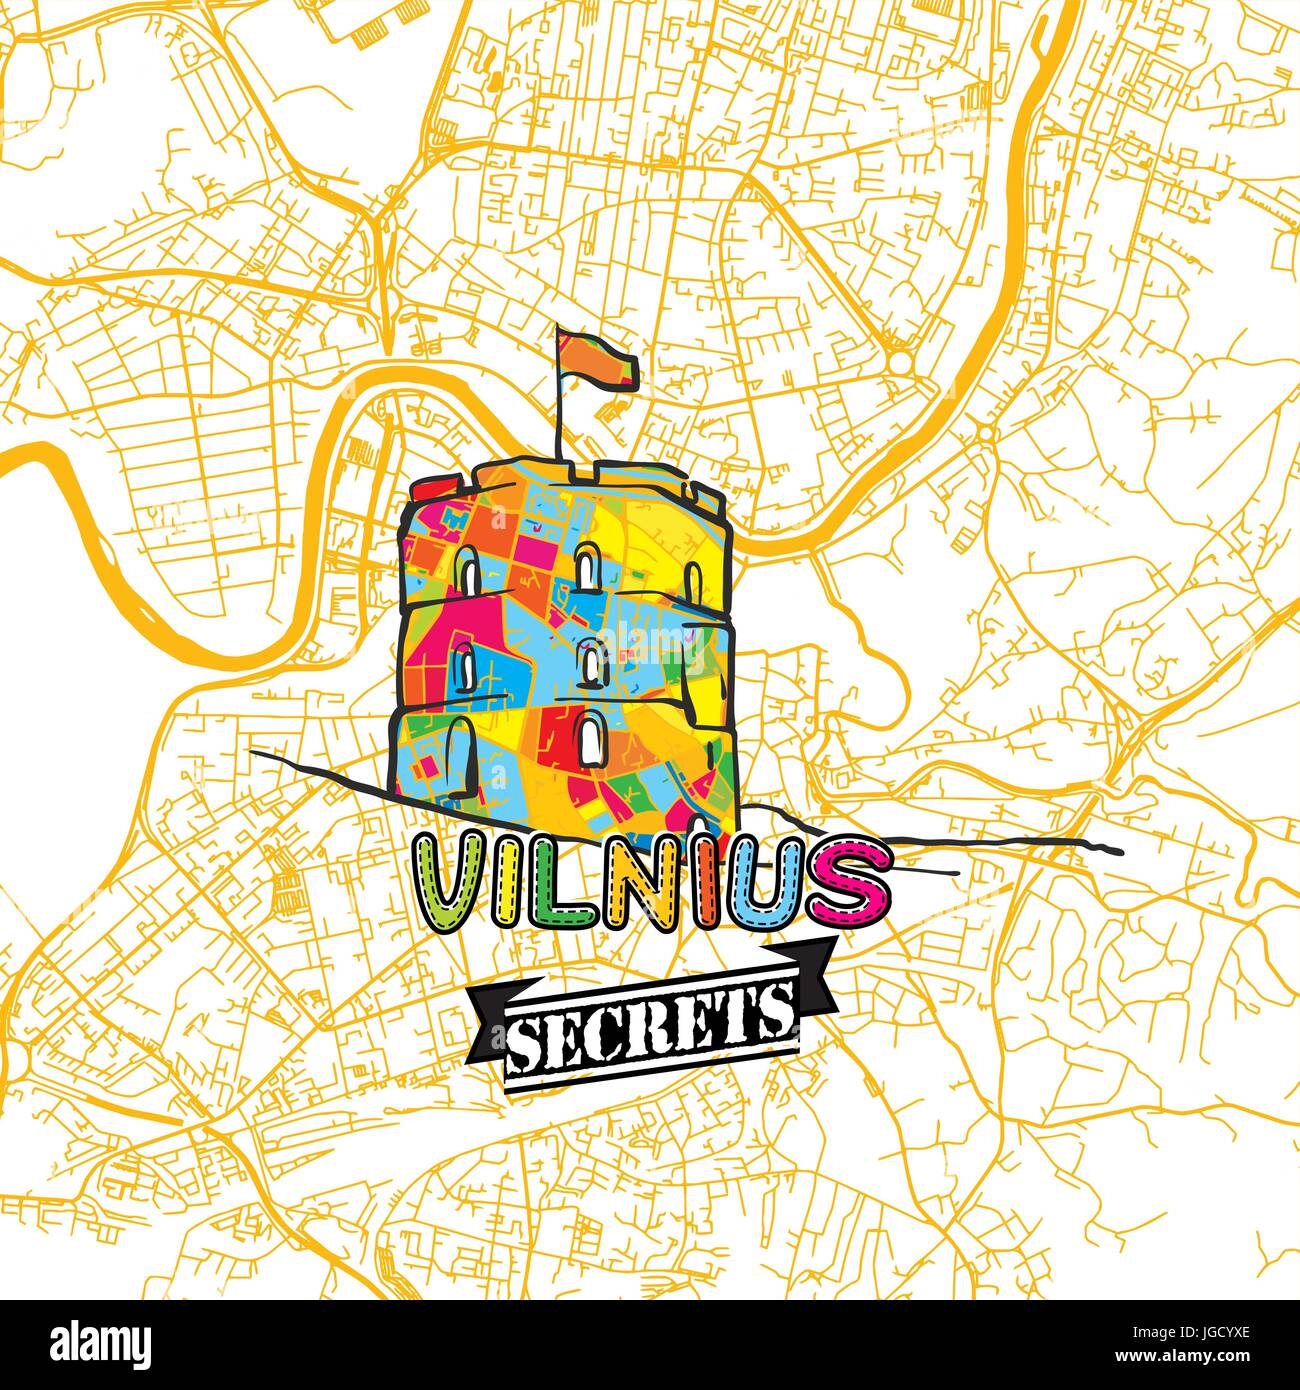 Vilnius Travel Secrets Art Map for mapping experts and travel guides. Handmade city logo, typo badge and hand drawn - Stock Image